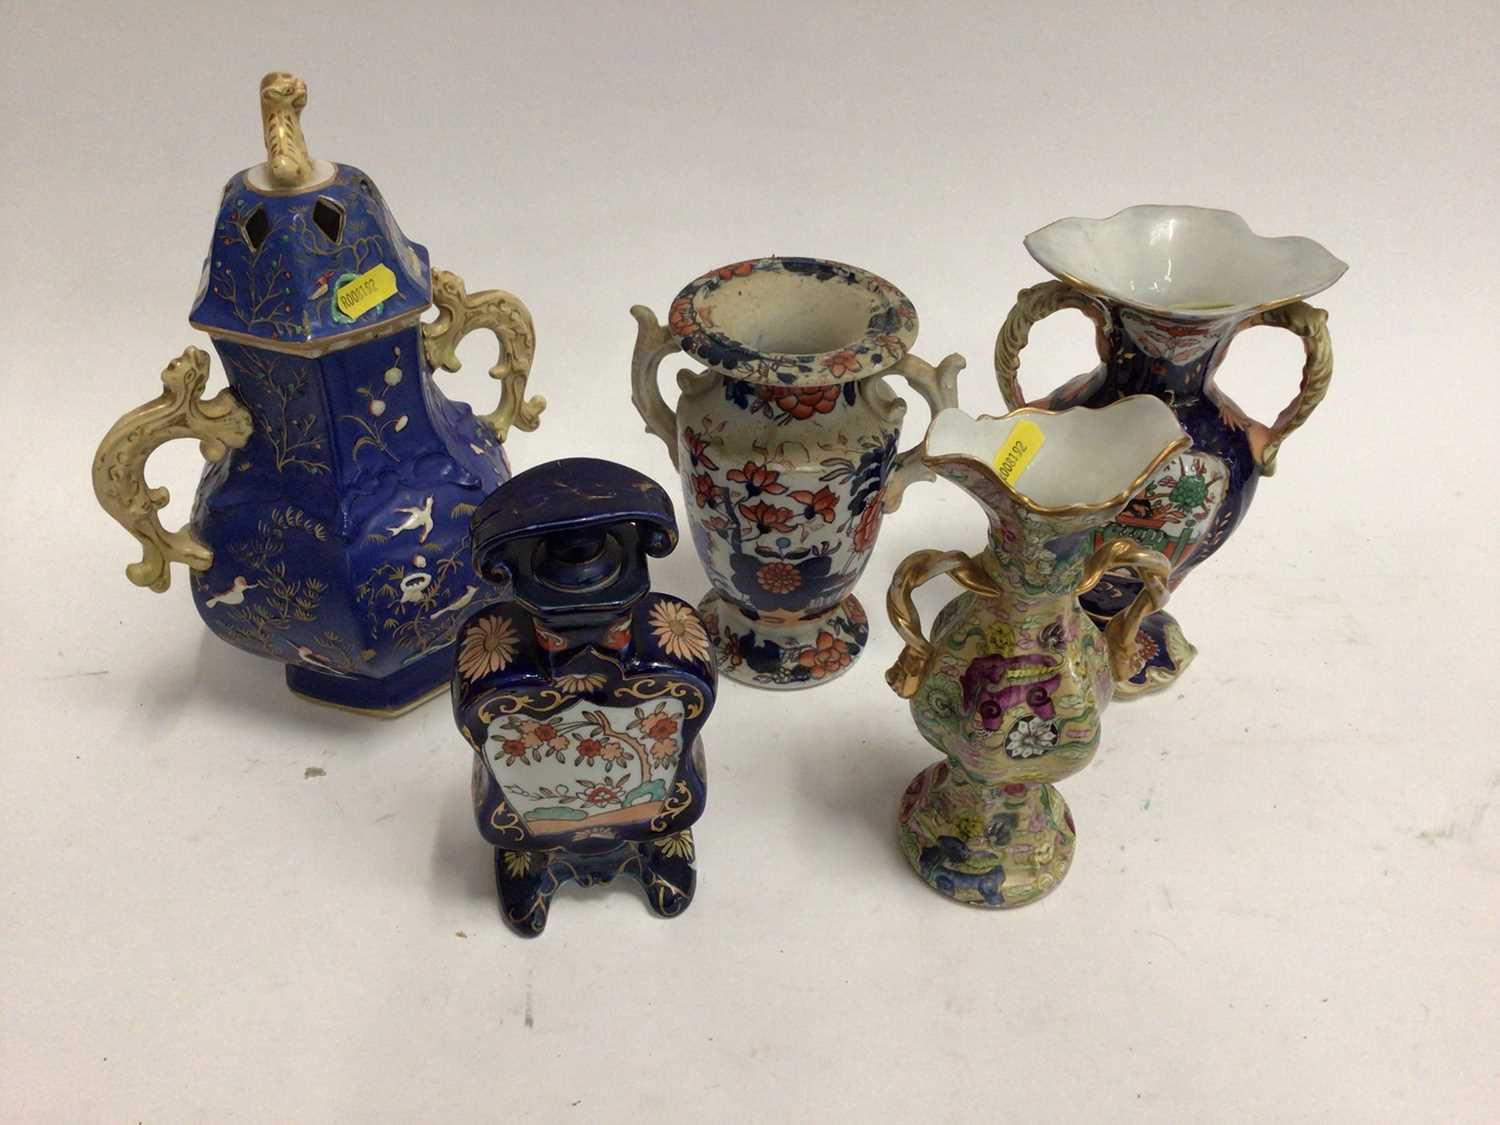 19th century Masons and Masons-style pottery, including four vases and a scent bottle, the largest v